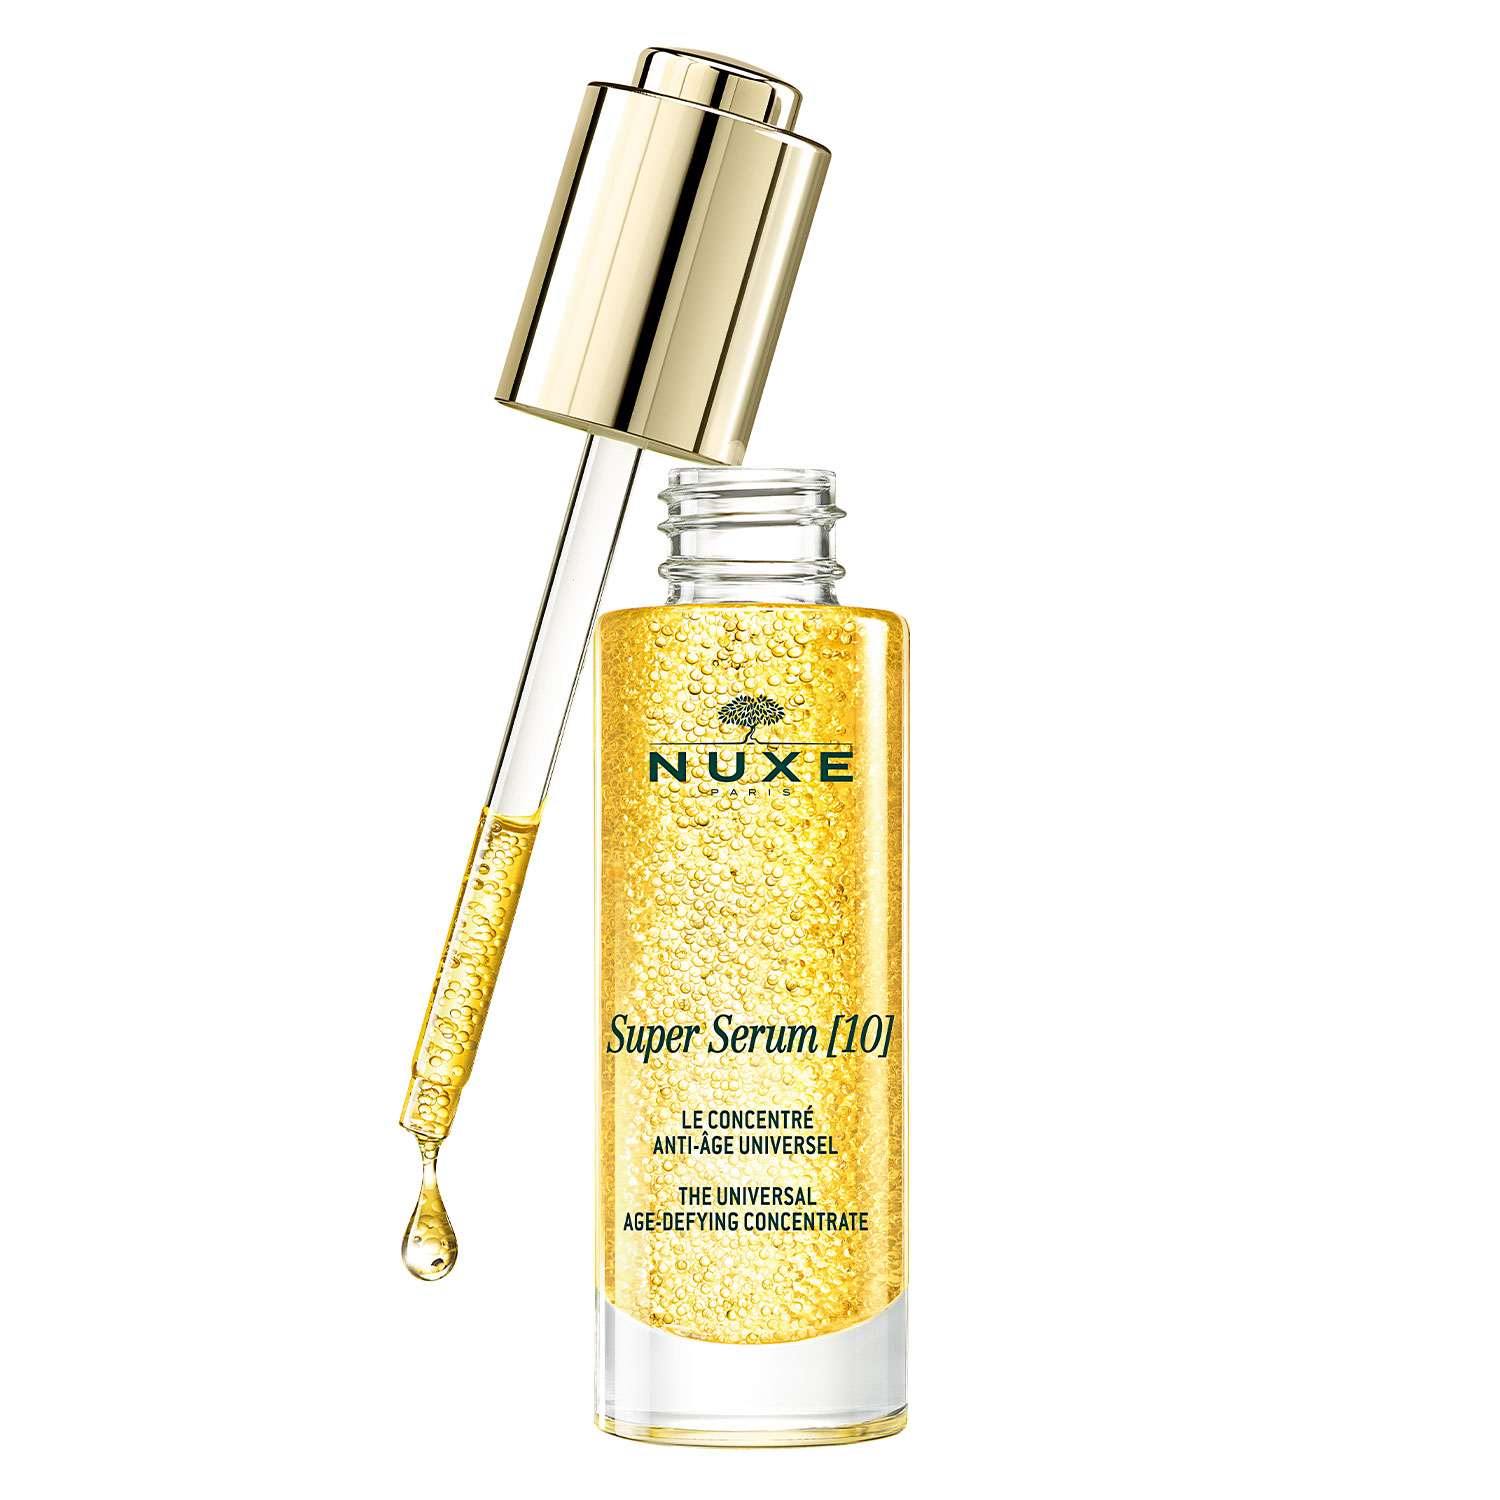 Nuxe Face - Super Serum [10]